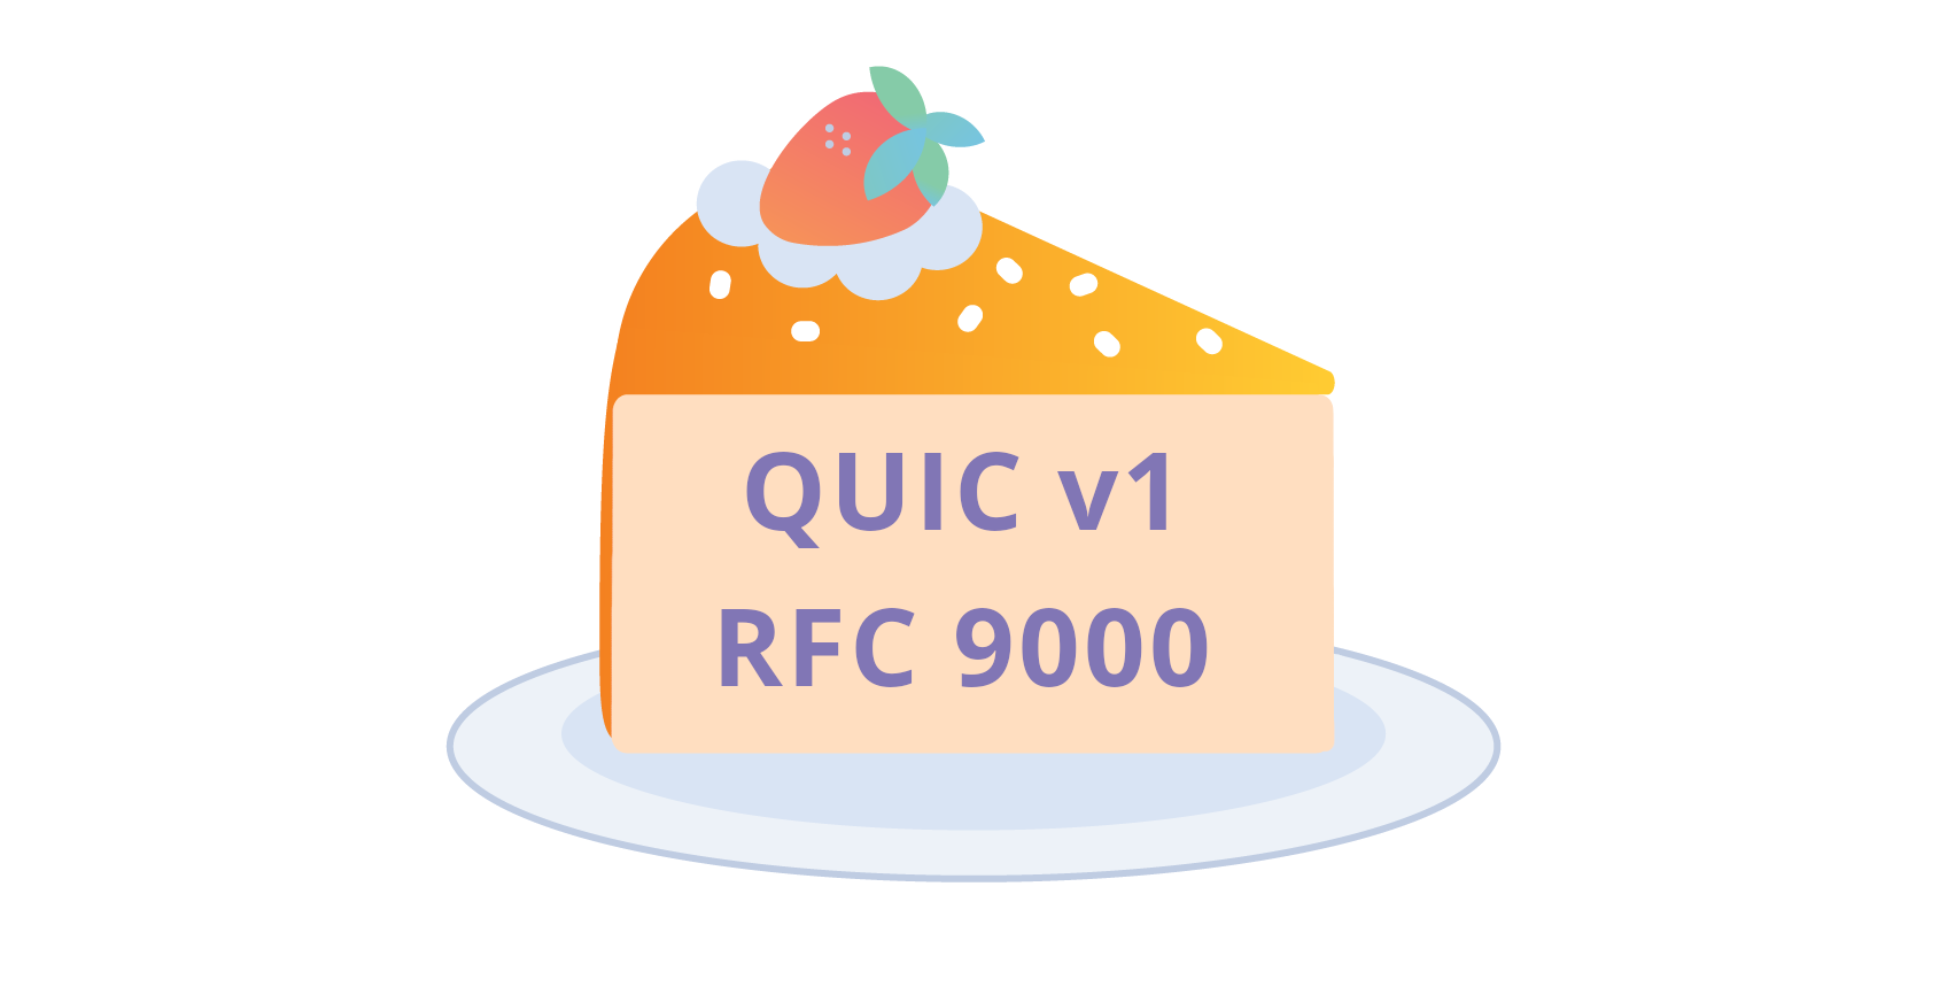 QUIC Version 1 is live on Cloudflare